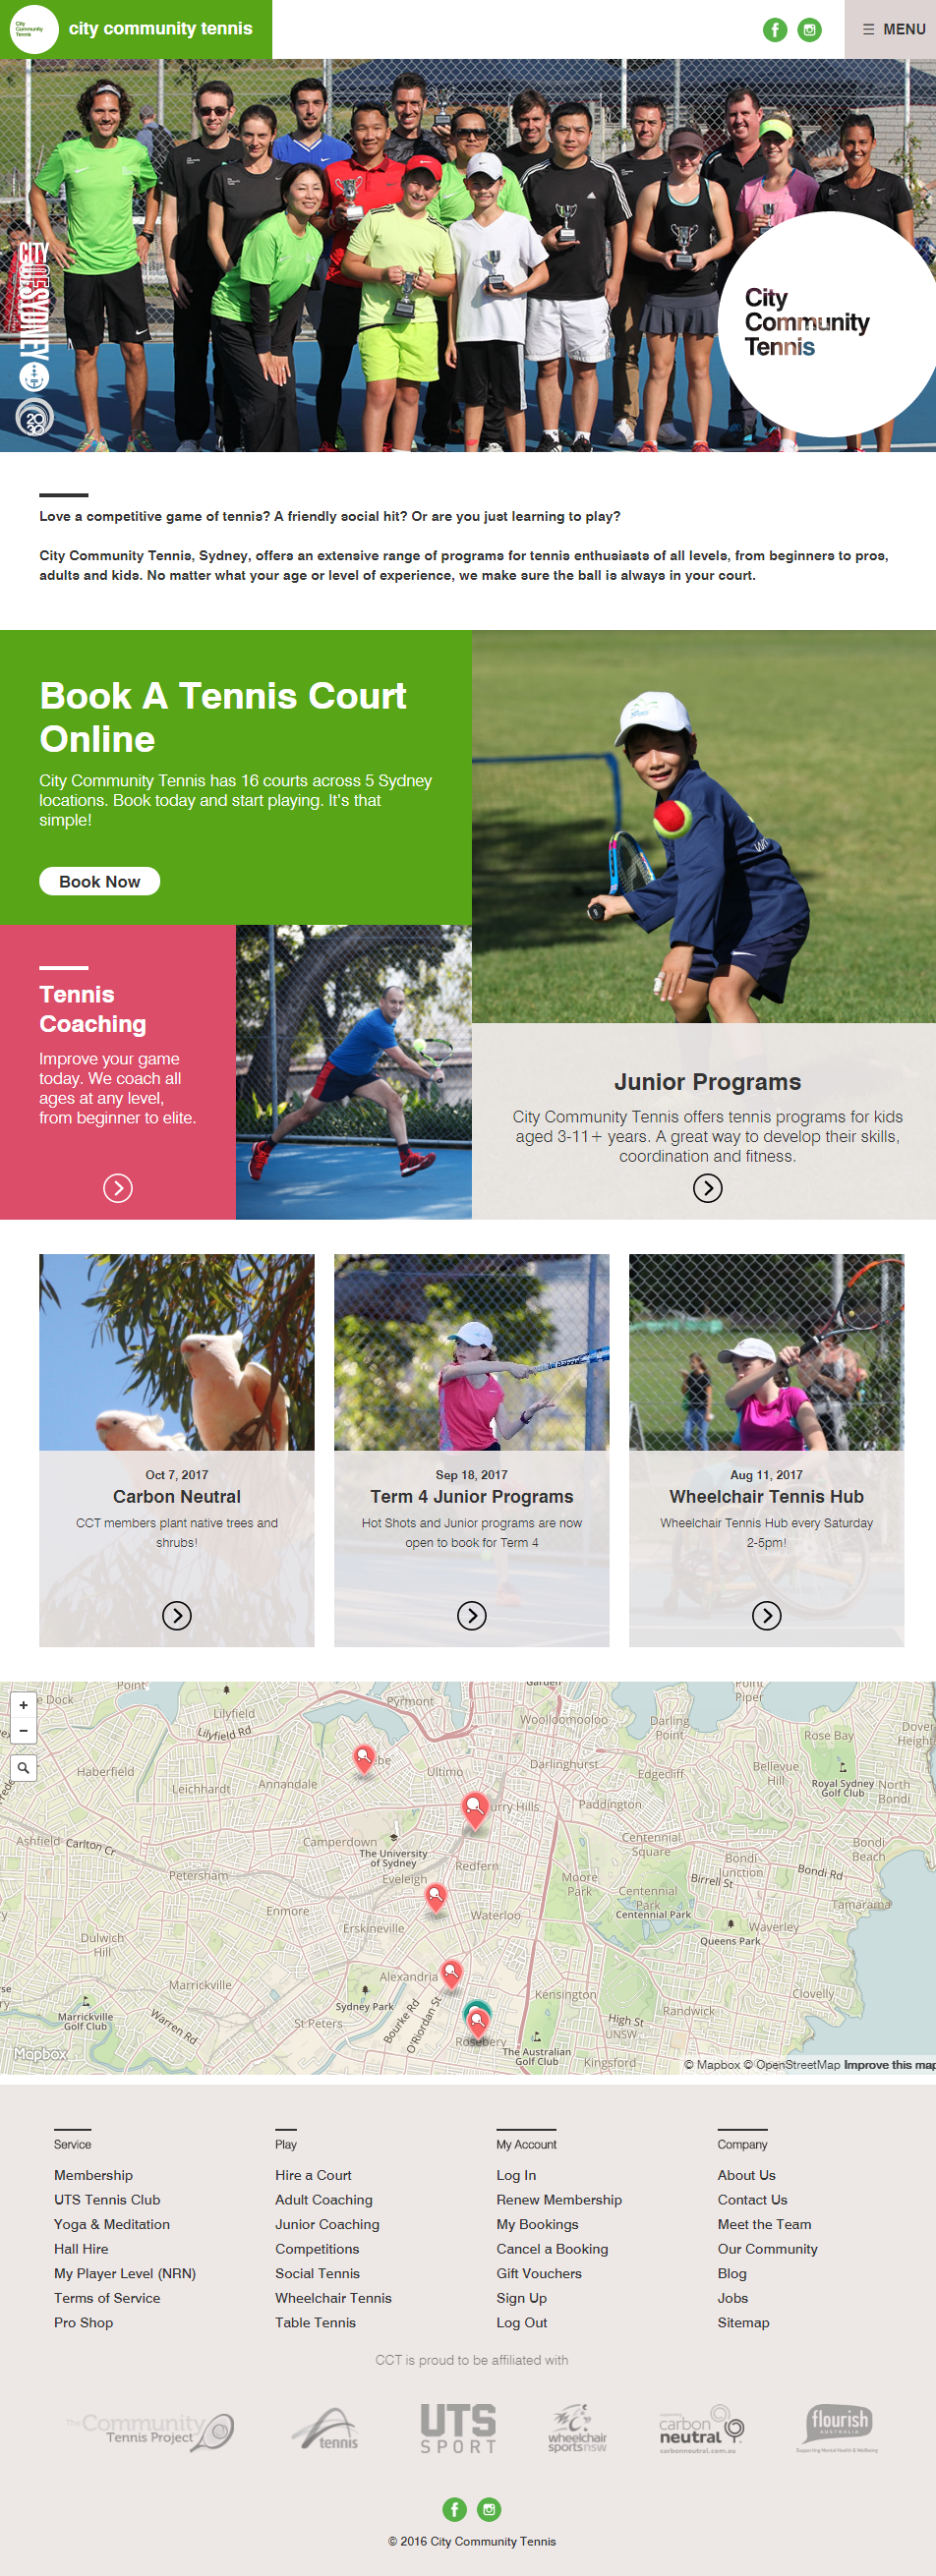 City Community Tennis - website copy